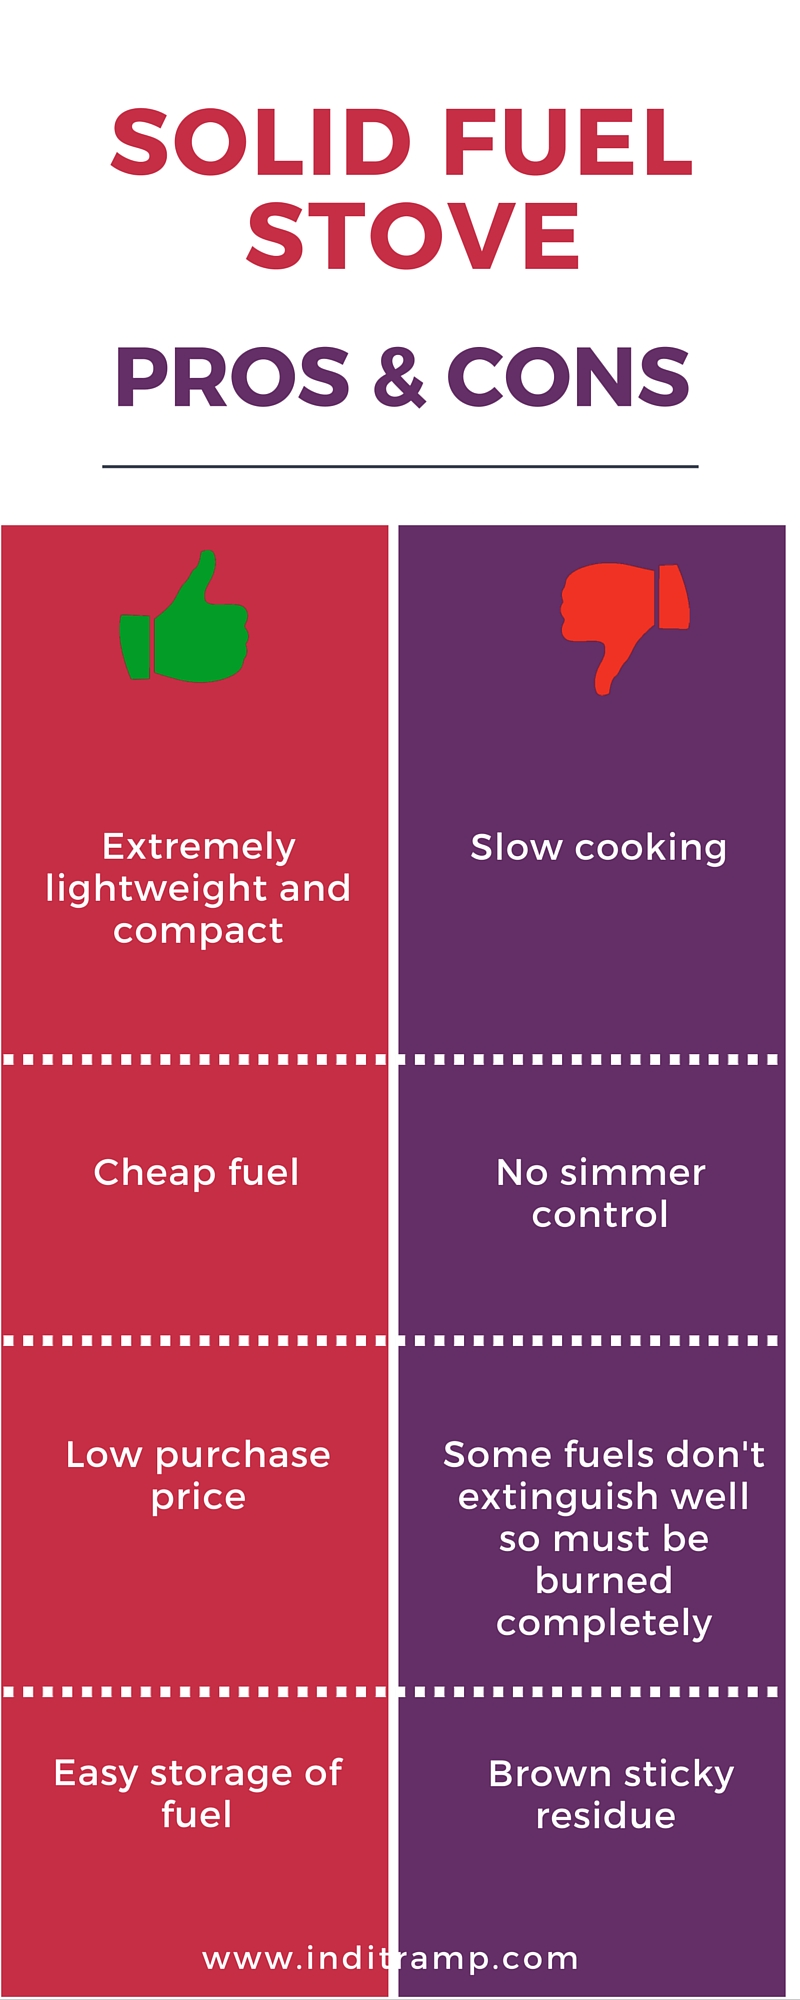 Infographic summarising the pros and cons for a solid fuel stove